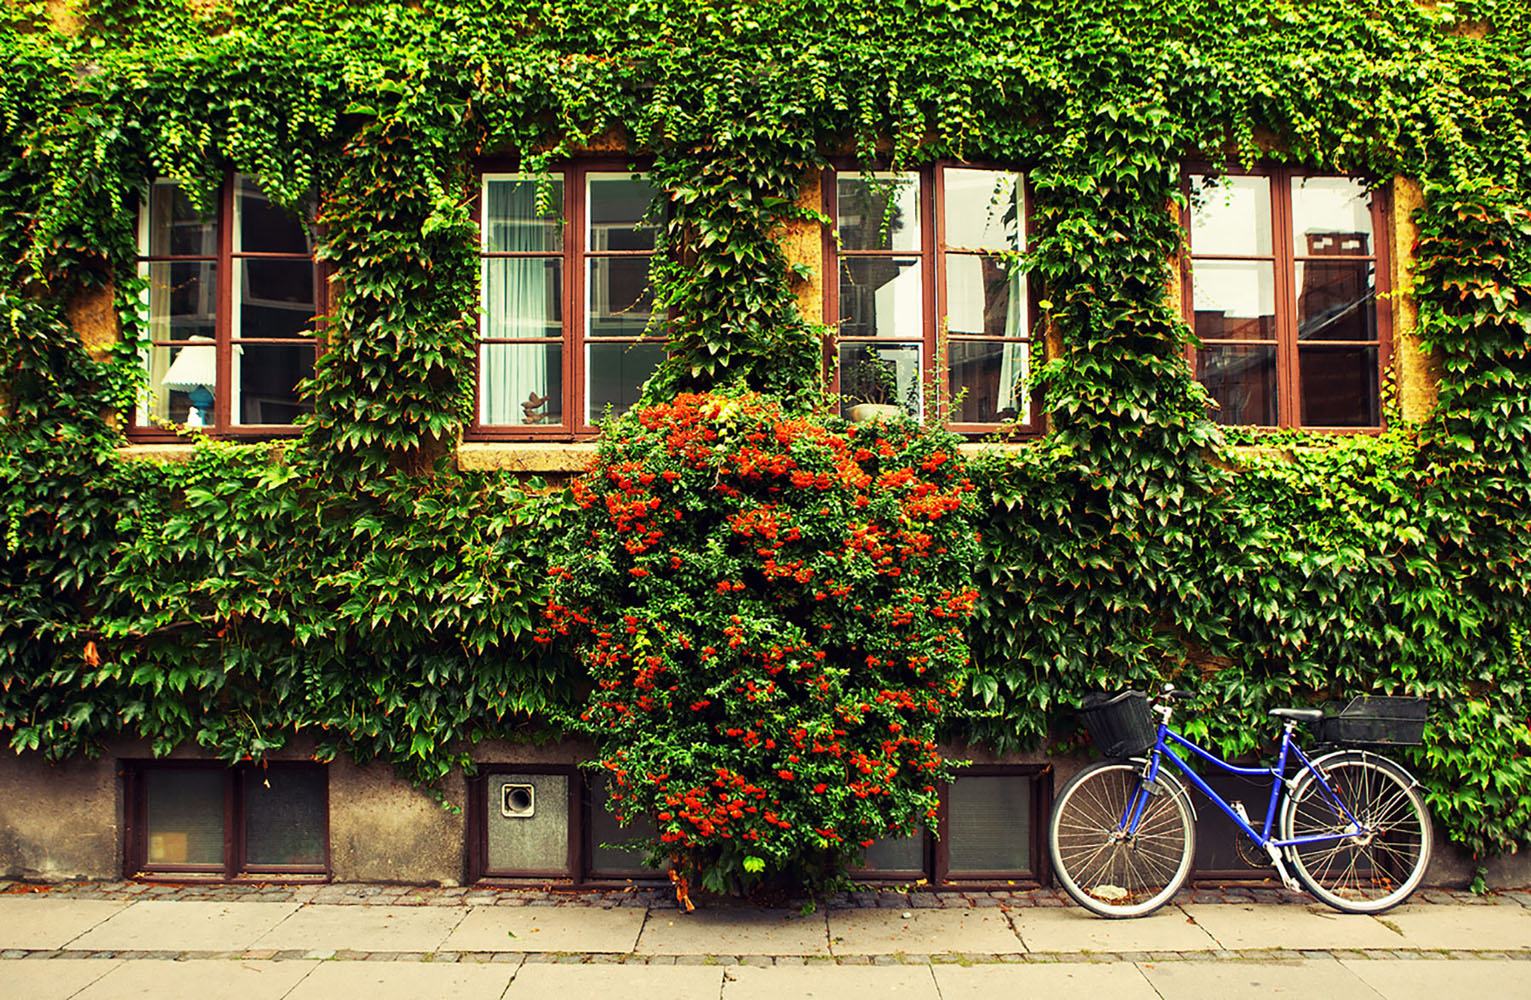 A bicycle leaning against a wall of ivy in Copenhagen, Denmark.